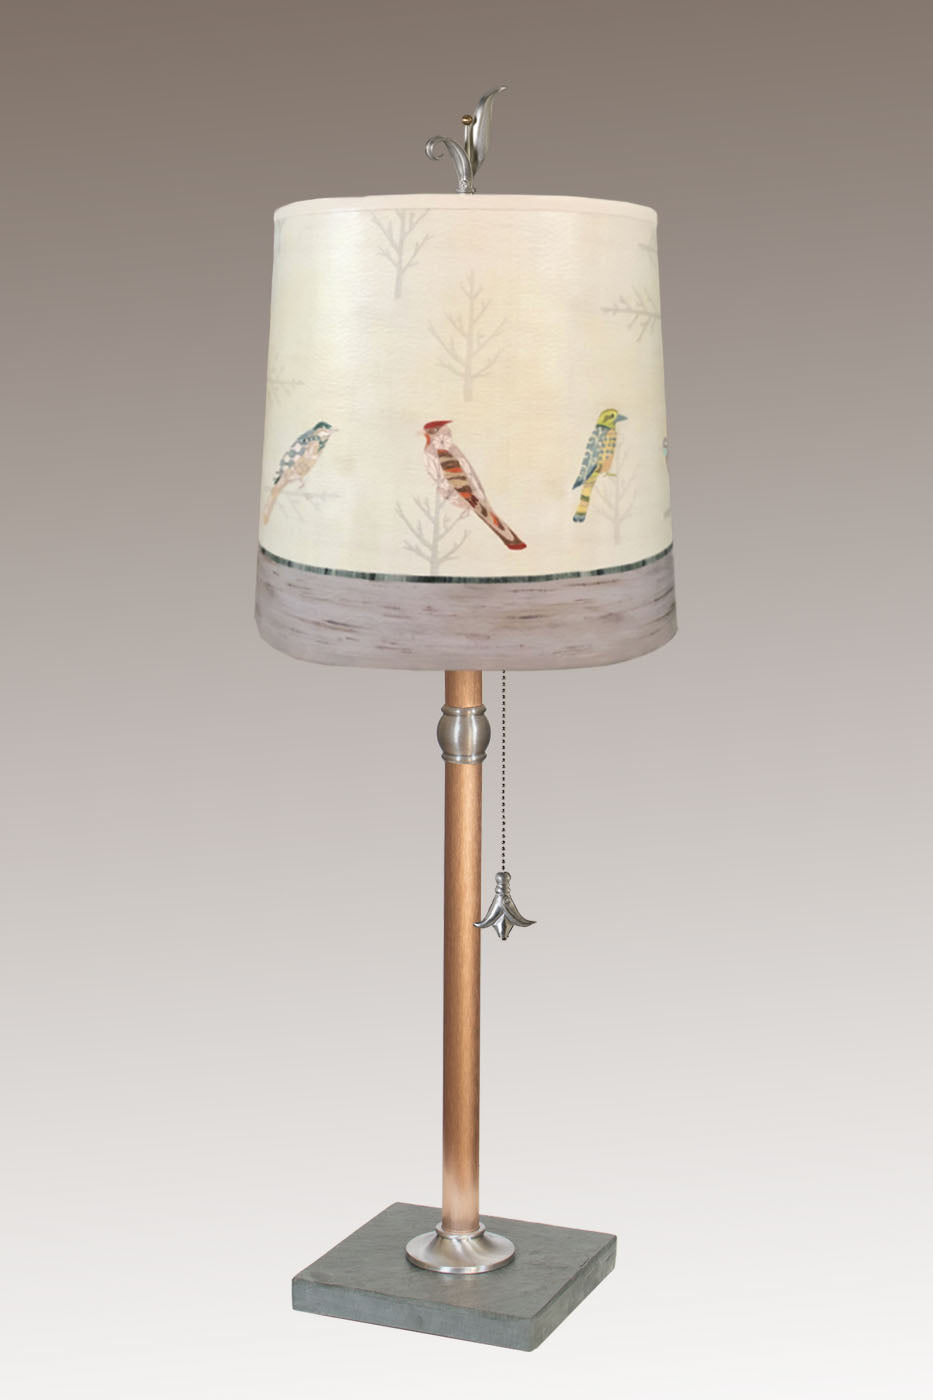 Copper Table Lamp with Medium Drum Shade in Bird Friends